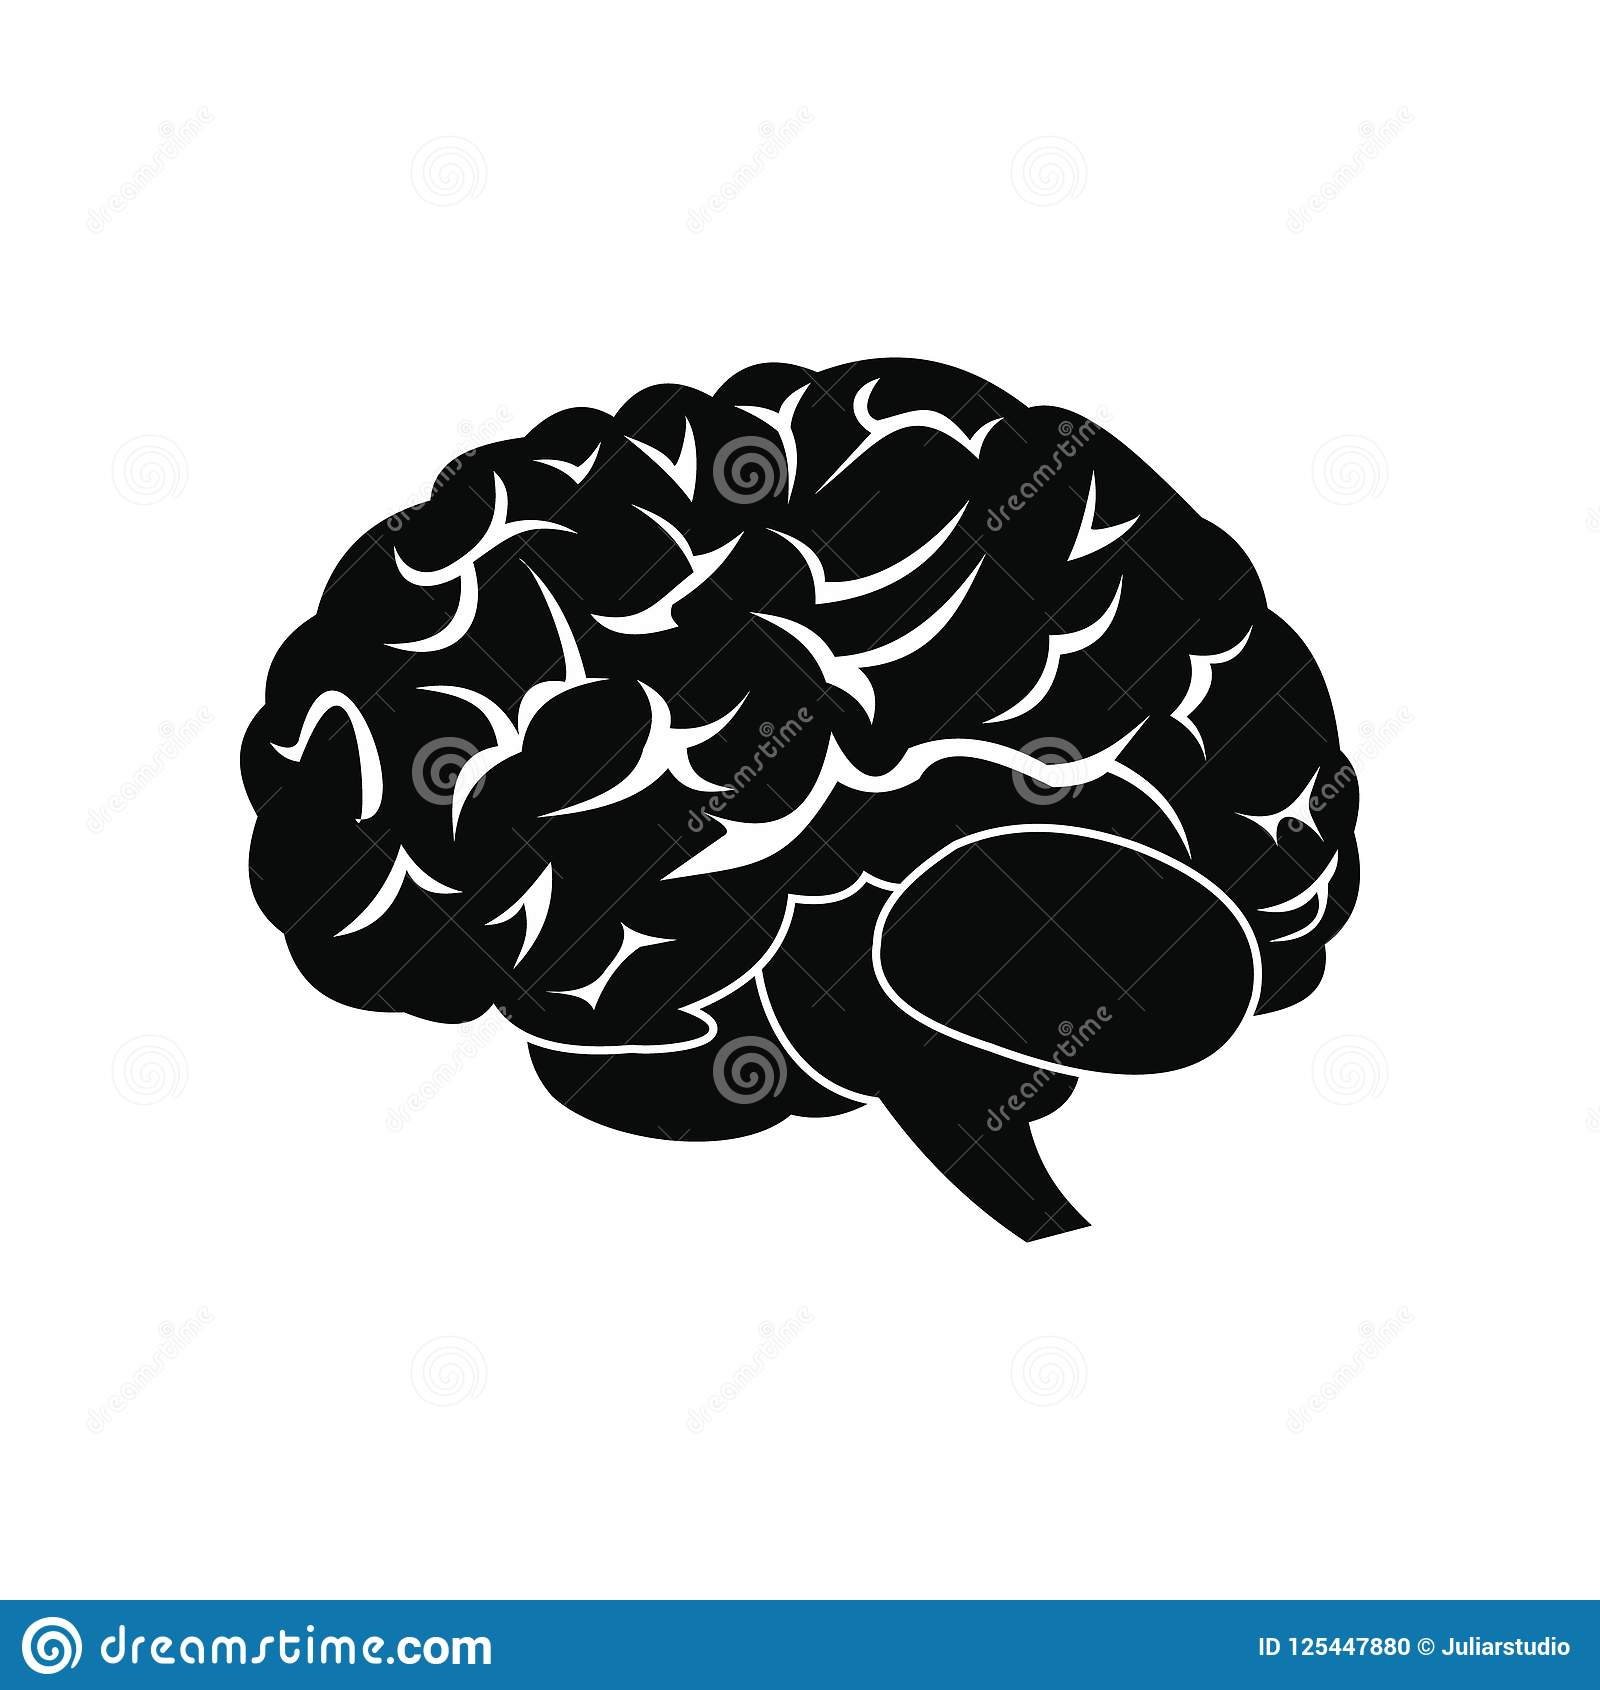 Human brain black icon stock illustration  Illustration of